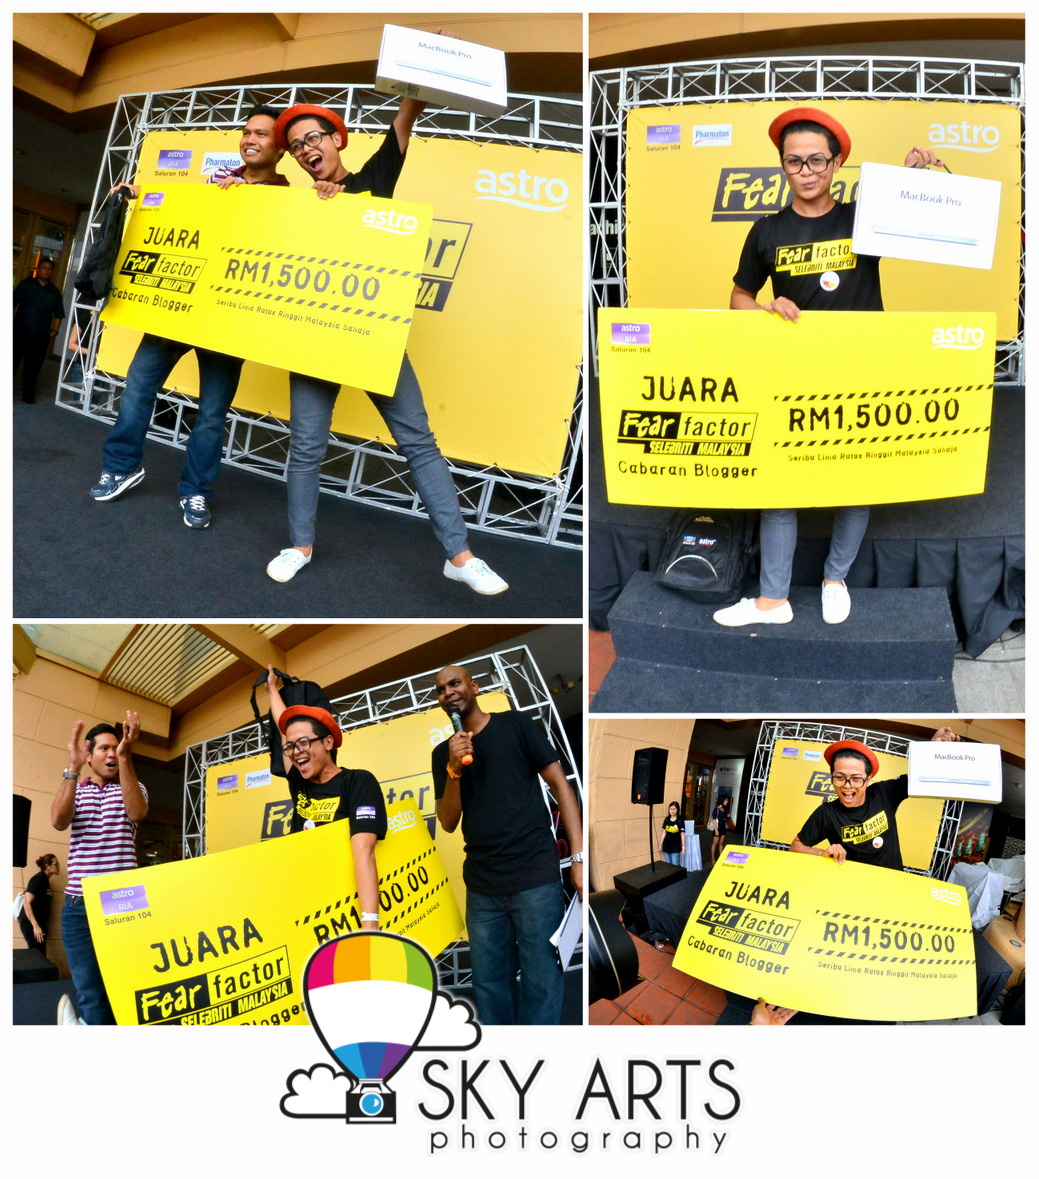 2aa33c8a678 Congratz to Kifli who won himself a MacBook Pro together with RM1,500 cash!!